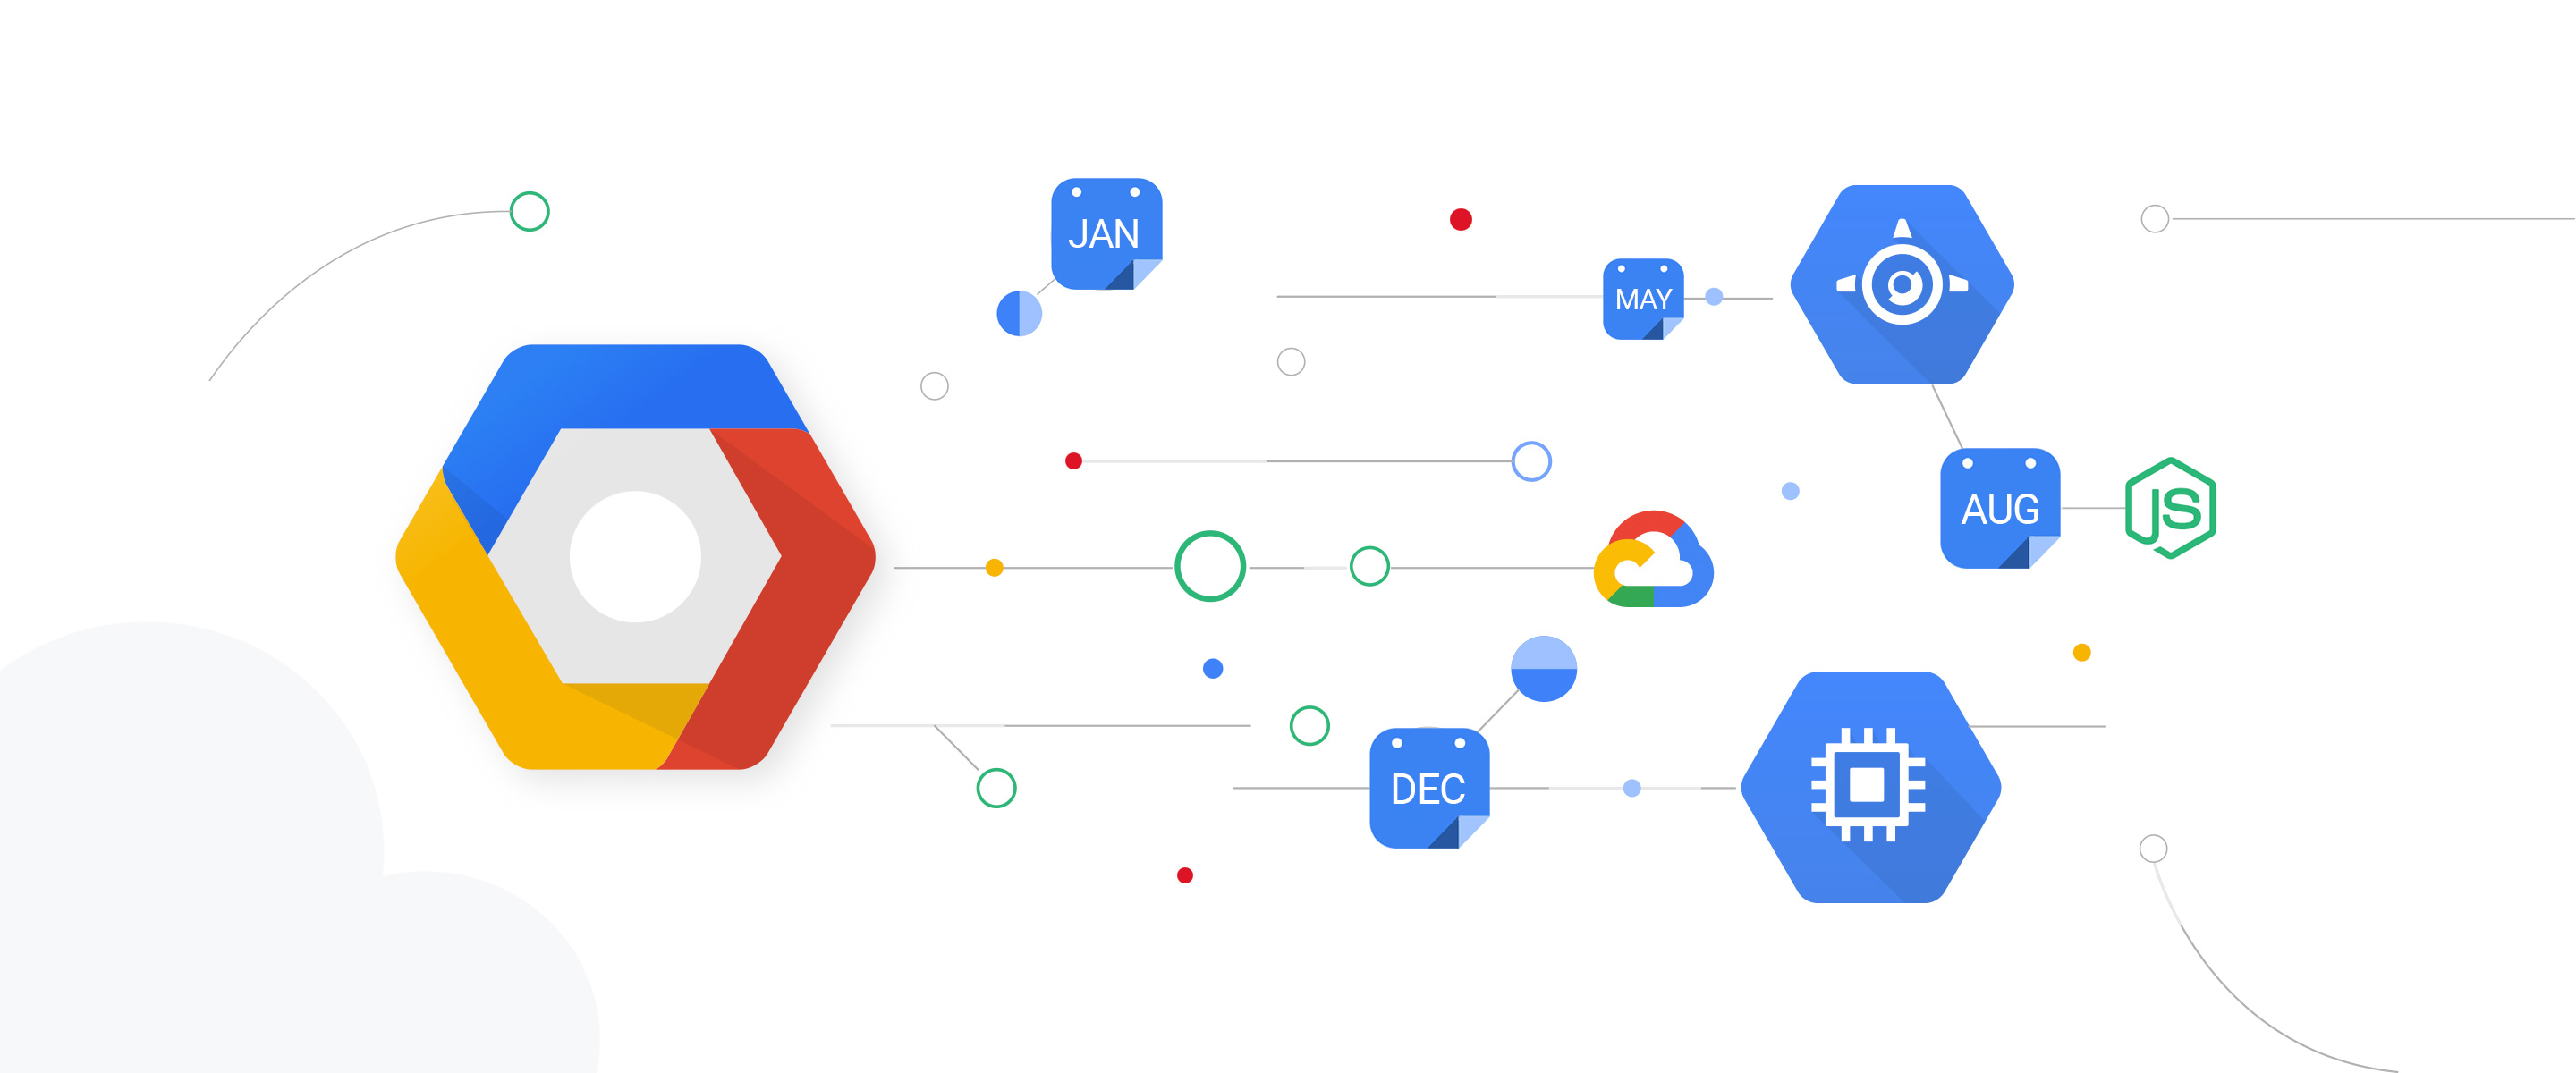 557 GCP blog posts from 2018 | Google Cloud Blog